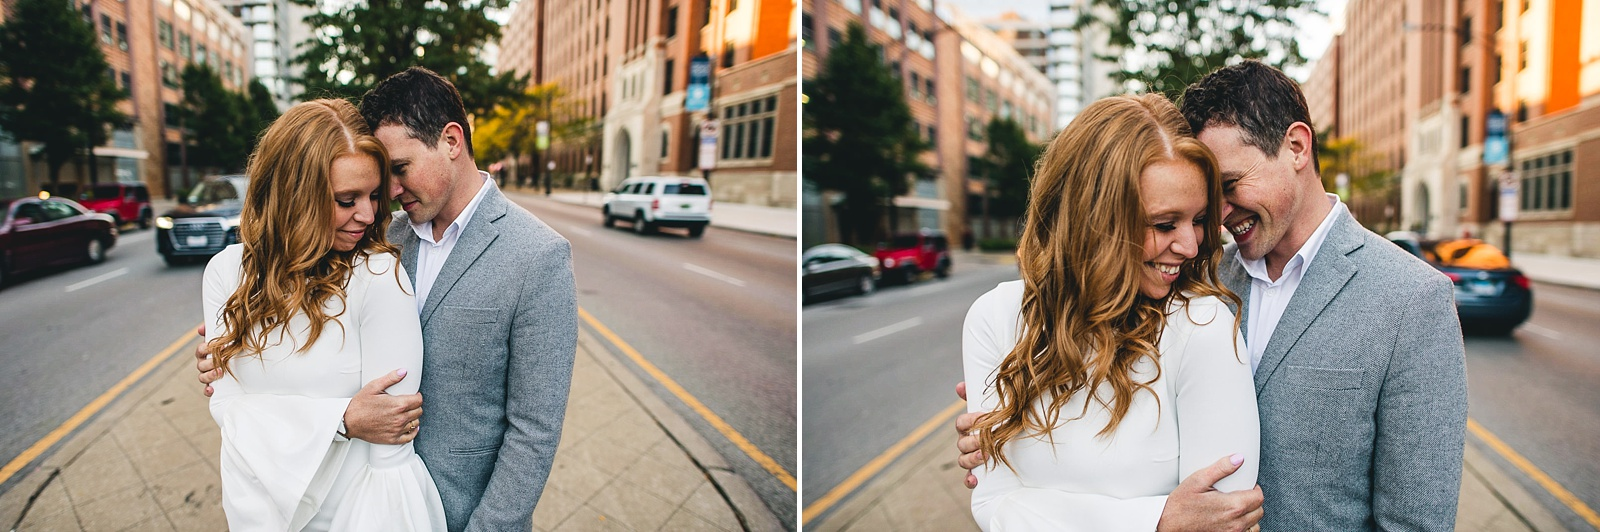 17 chicago engagement photos - Rooftop Chicago Engagement Session // Aubyn + Danny